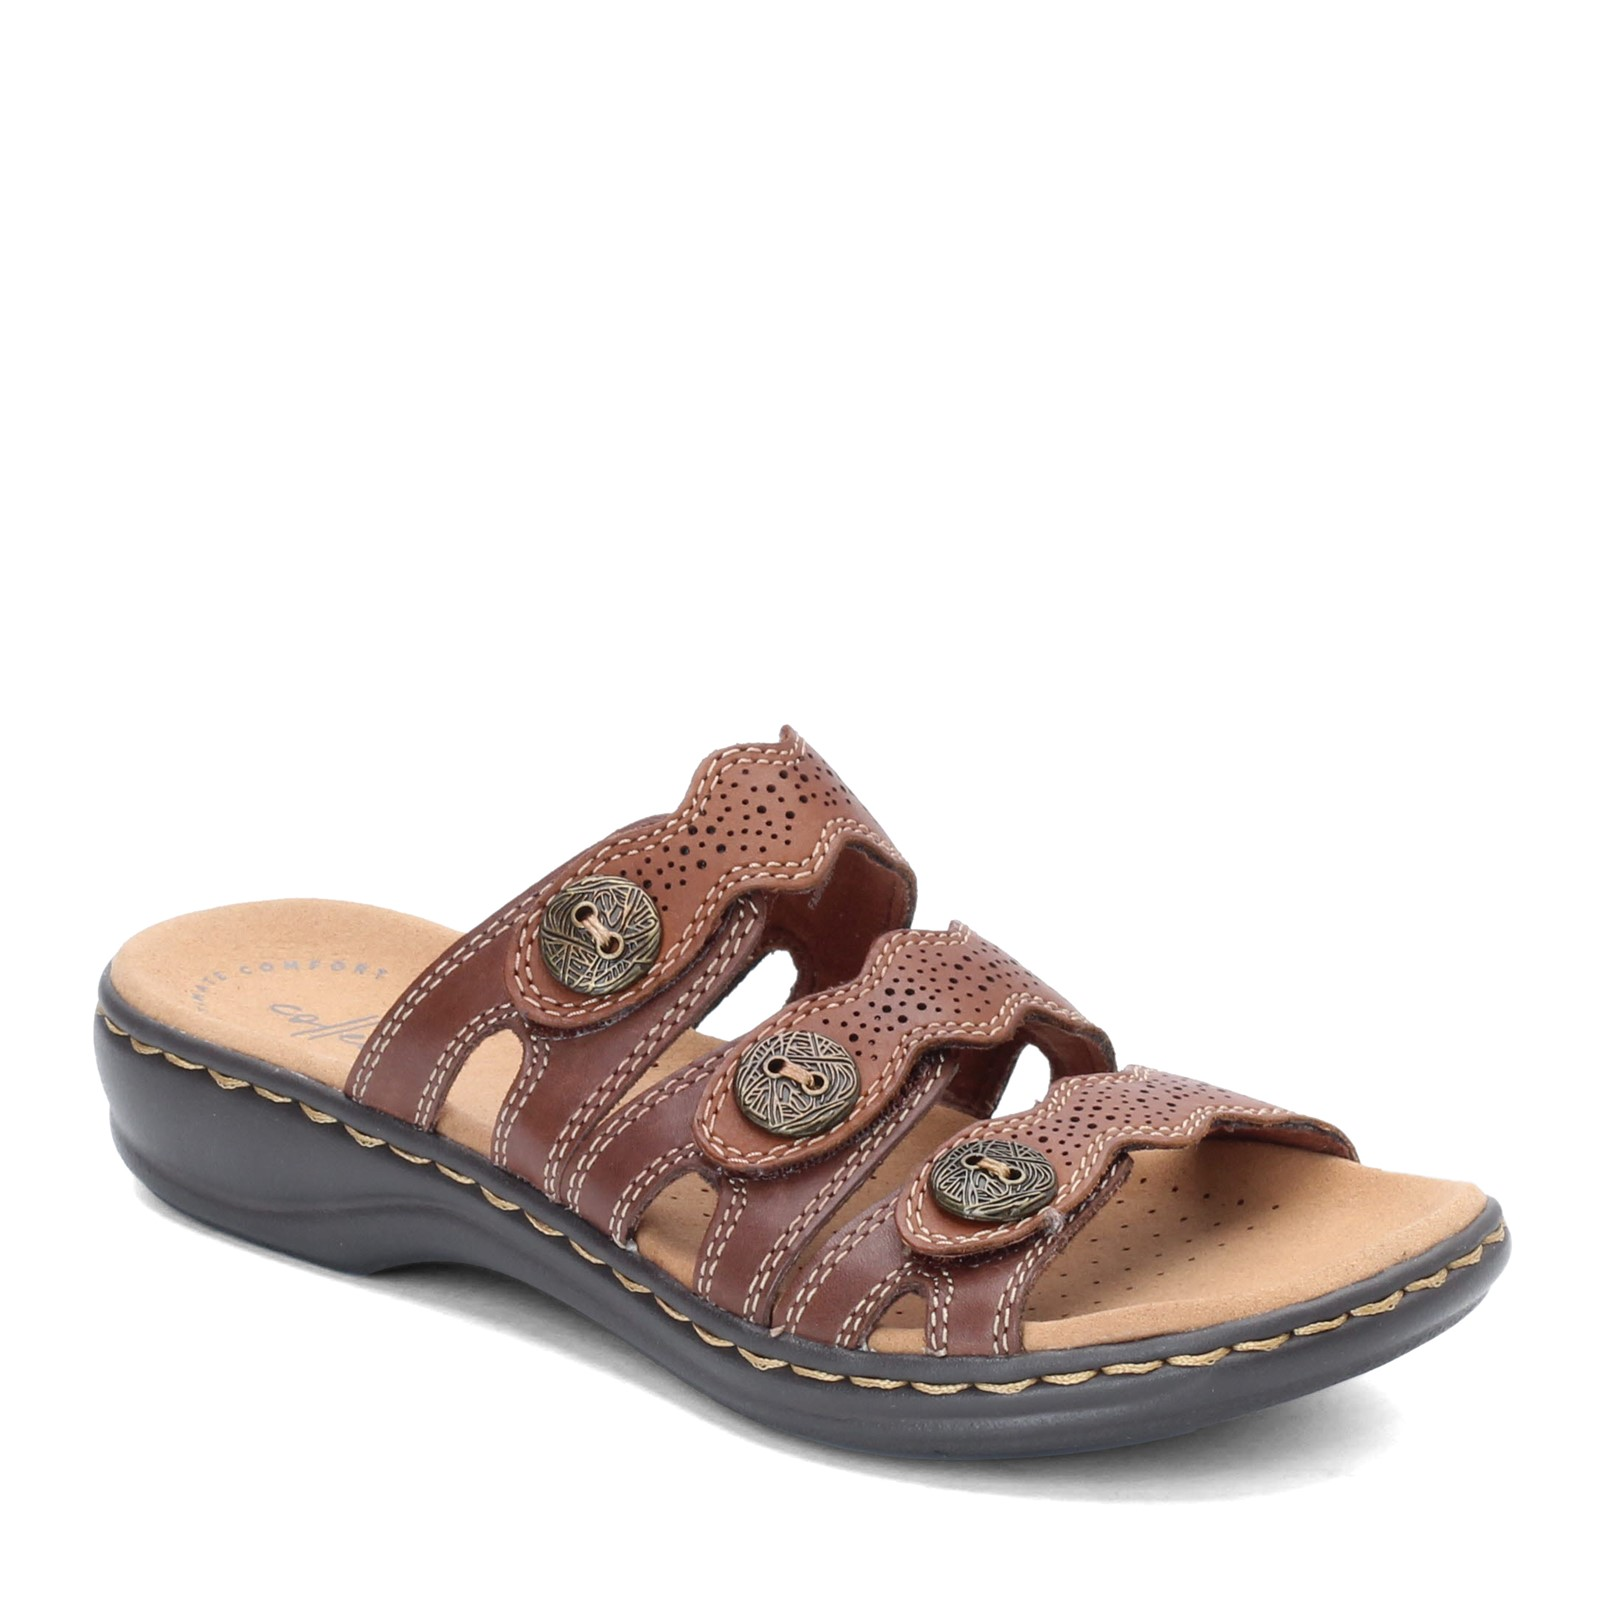 Women's Clarks, Leisa Grace Sandal